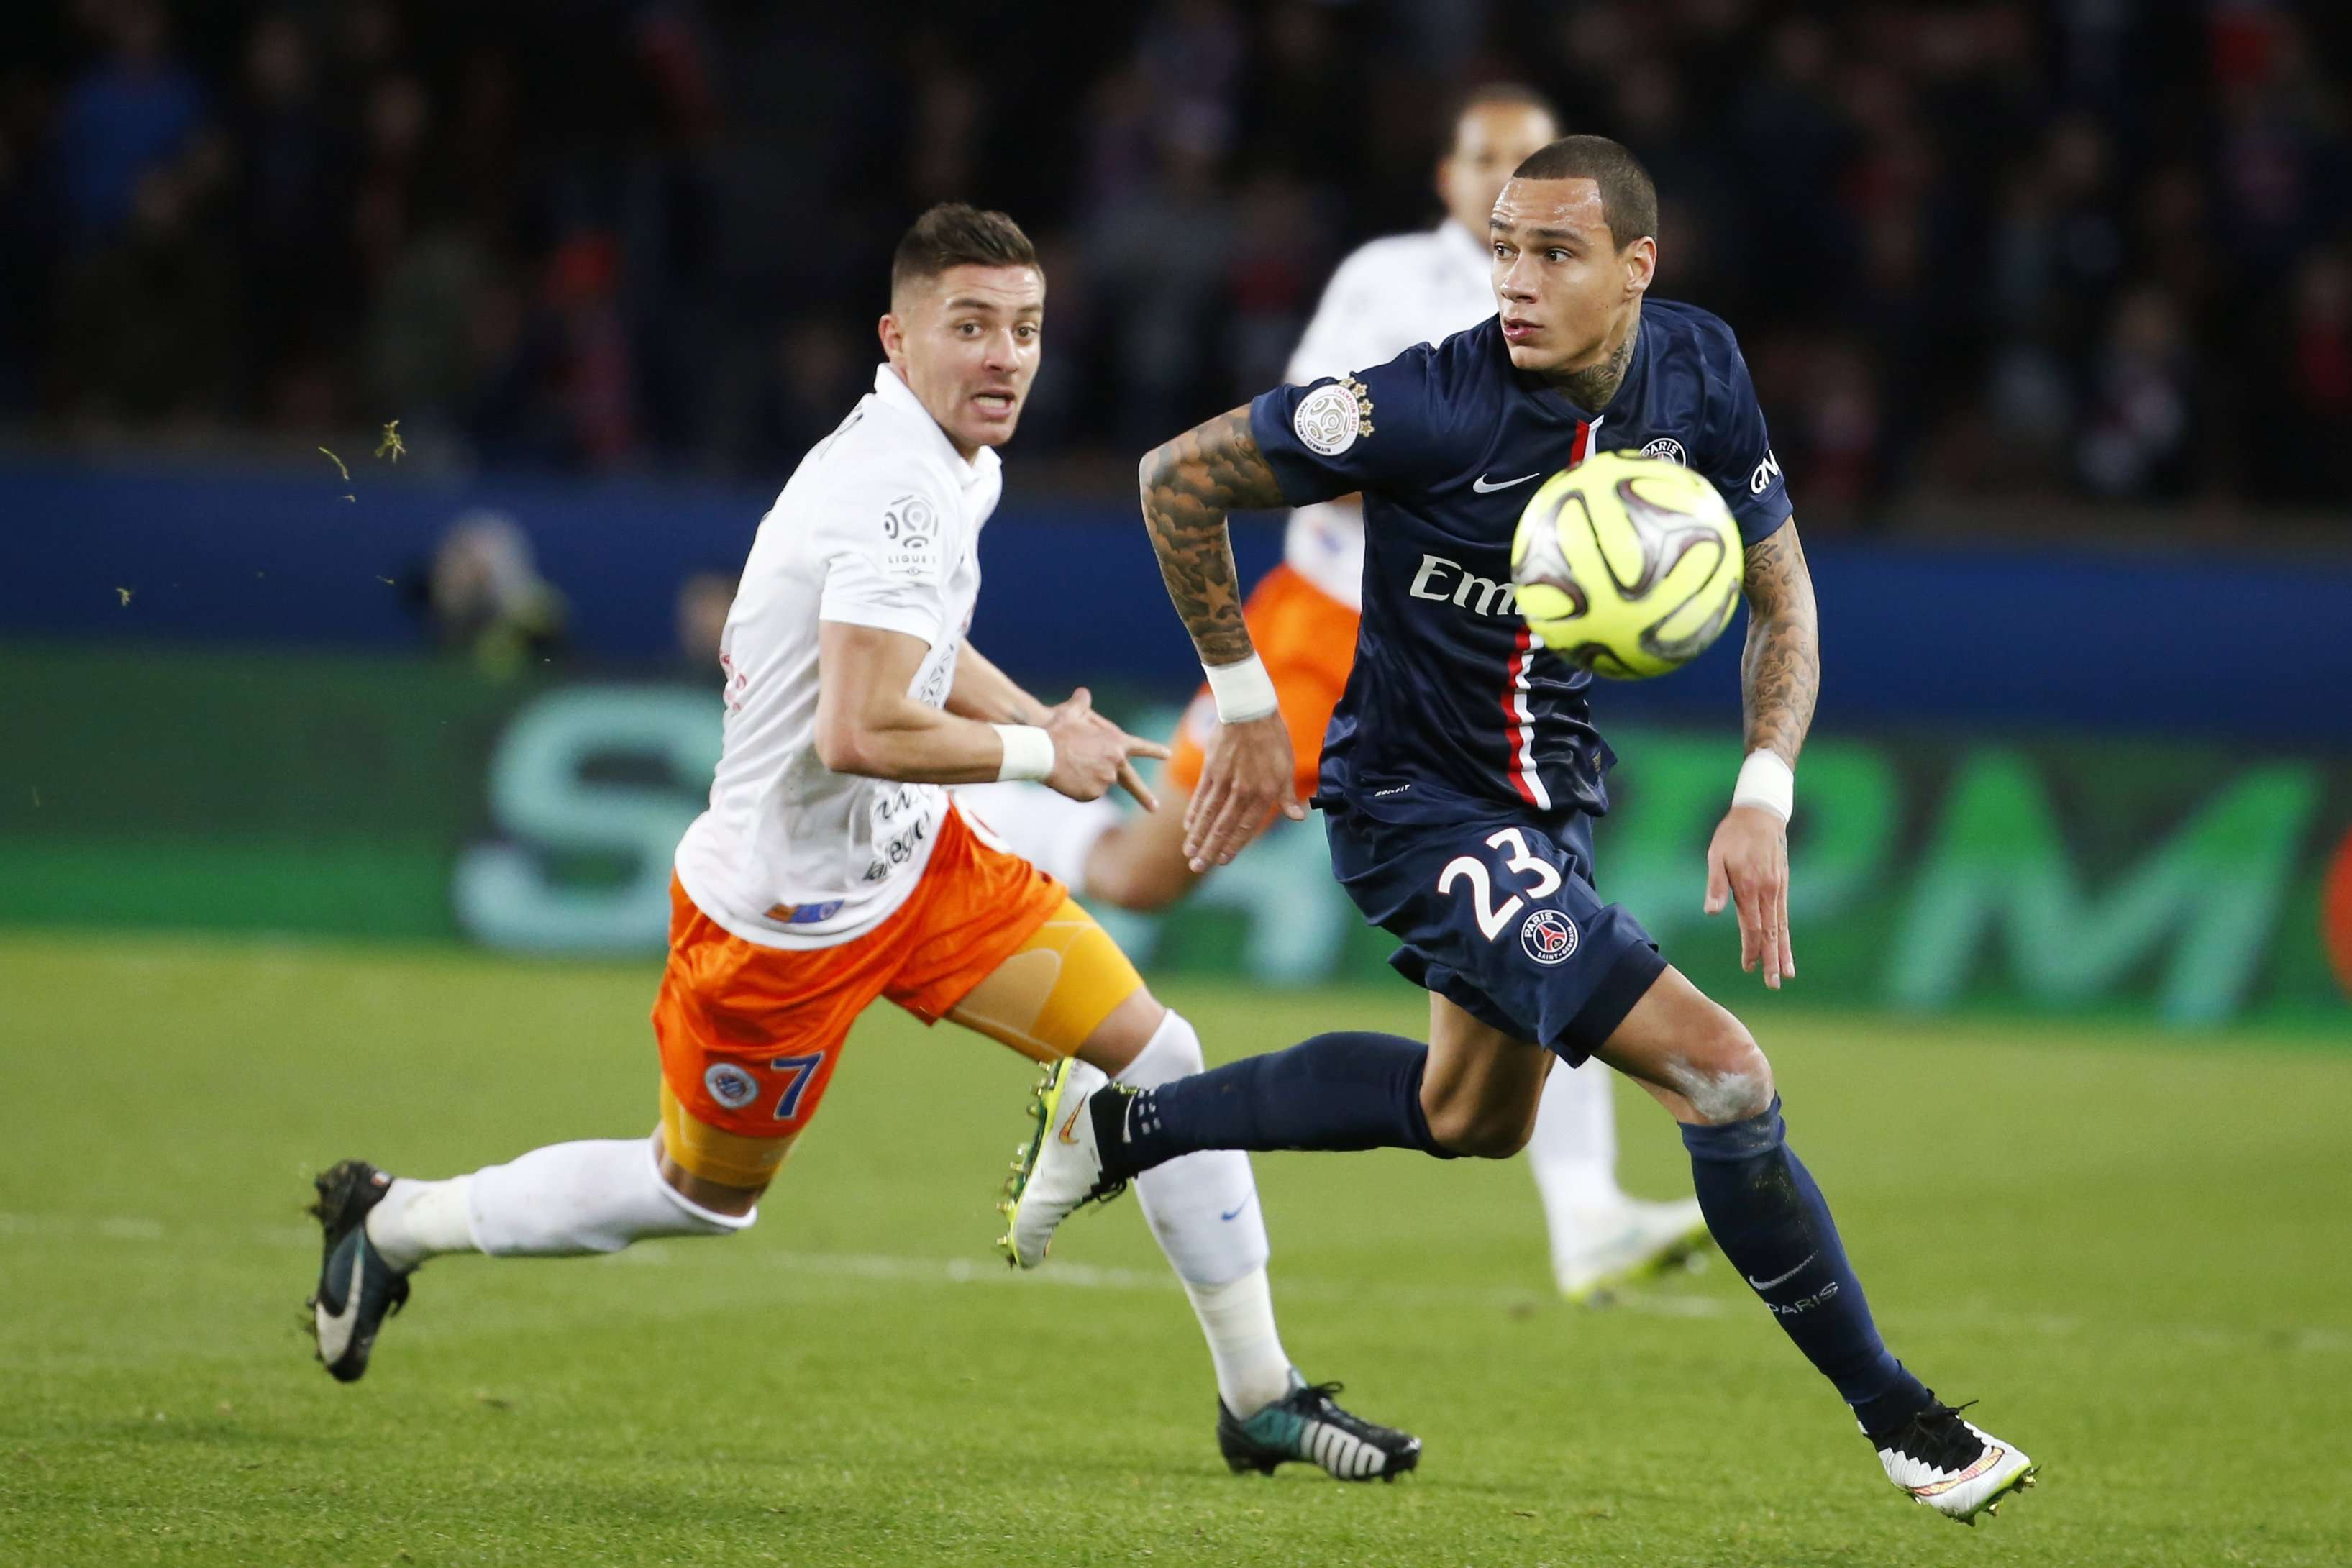 Paris Saint Germain's Gregory Van der Wiel (R) fights for the ball with Montpellier's Anthony Mounier (L) during their French Ligue 1 soccer match at Parc des Princes stadium in Paris, December 20, 2014. REUTERS/Charles Platiau (FRANCE - Tags: SPORT SOCCER) Foto: CHARLES PLATIAU/REUTERS